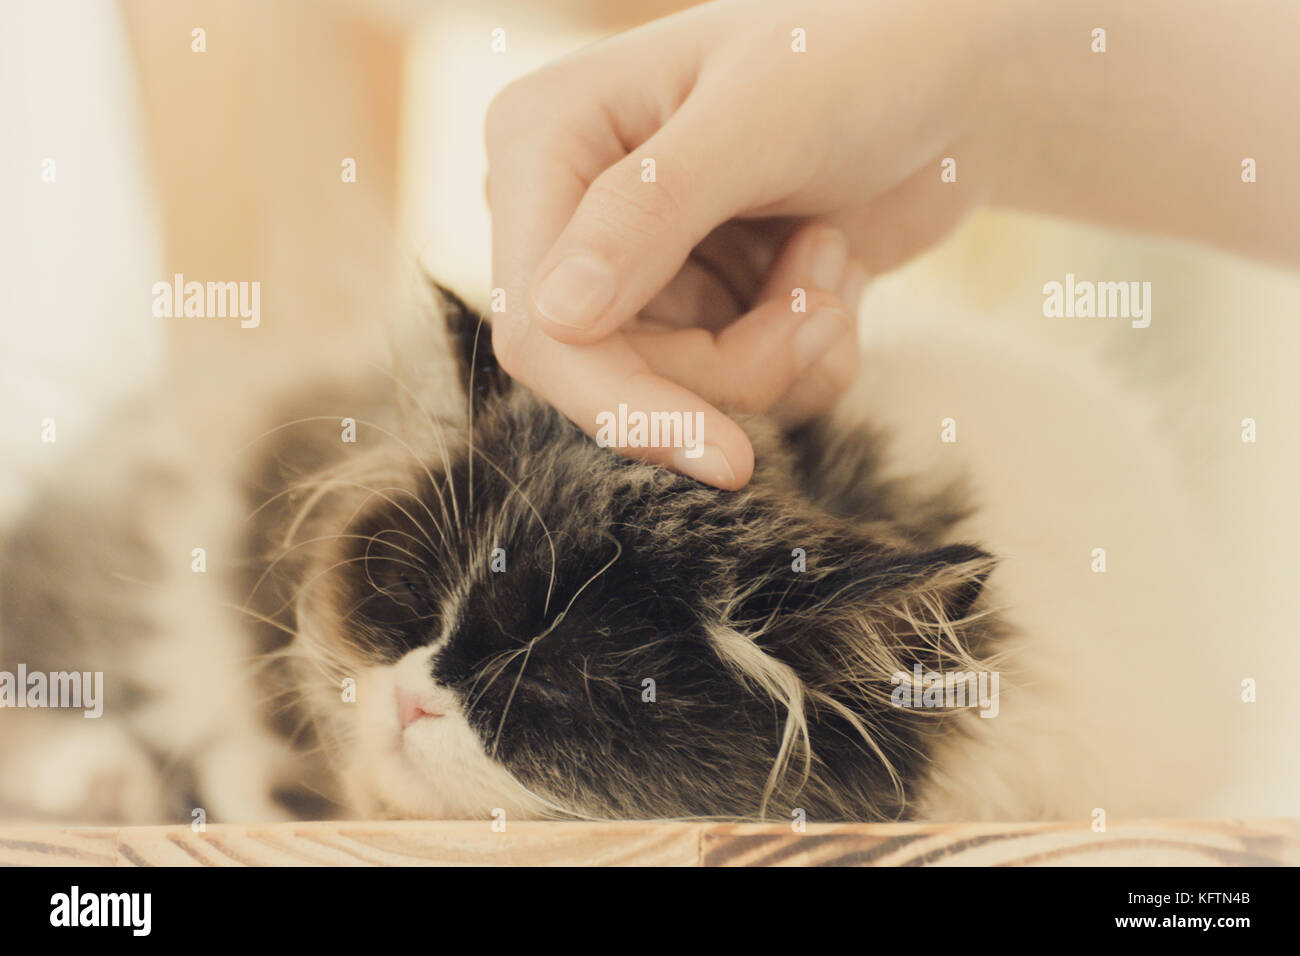 woman hand petting a kitty cat head, love to animals, soft focus and film style. - Stock Image